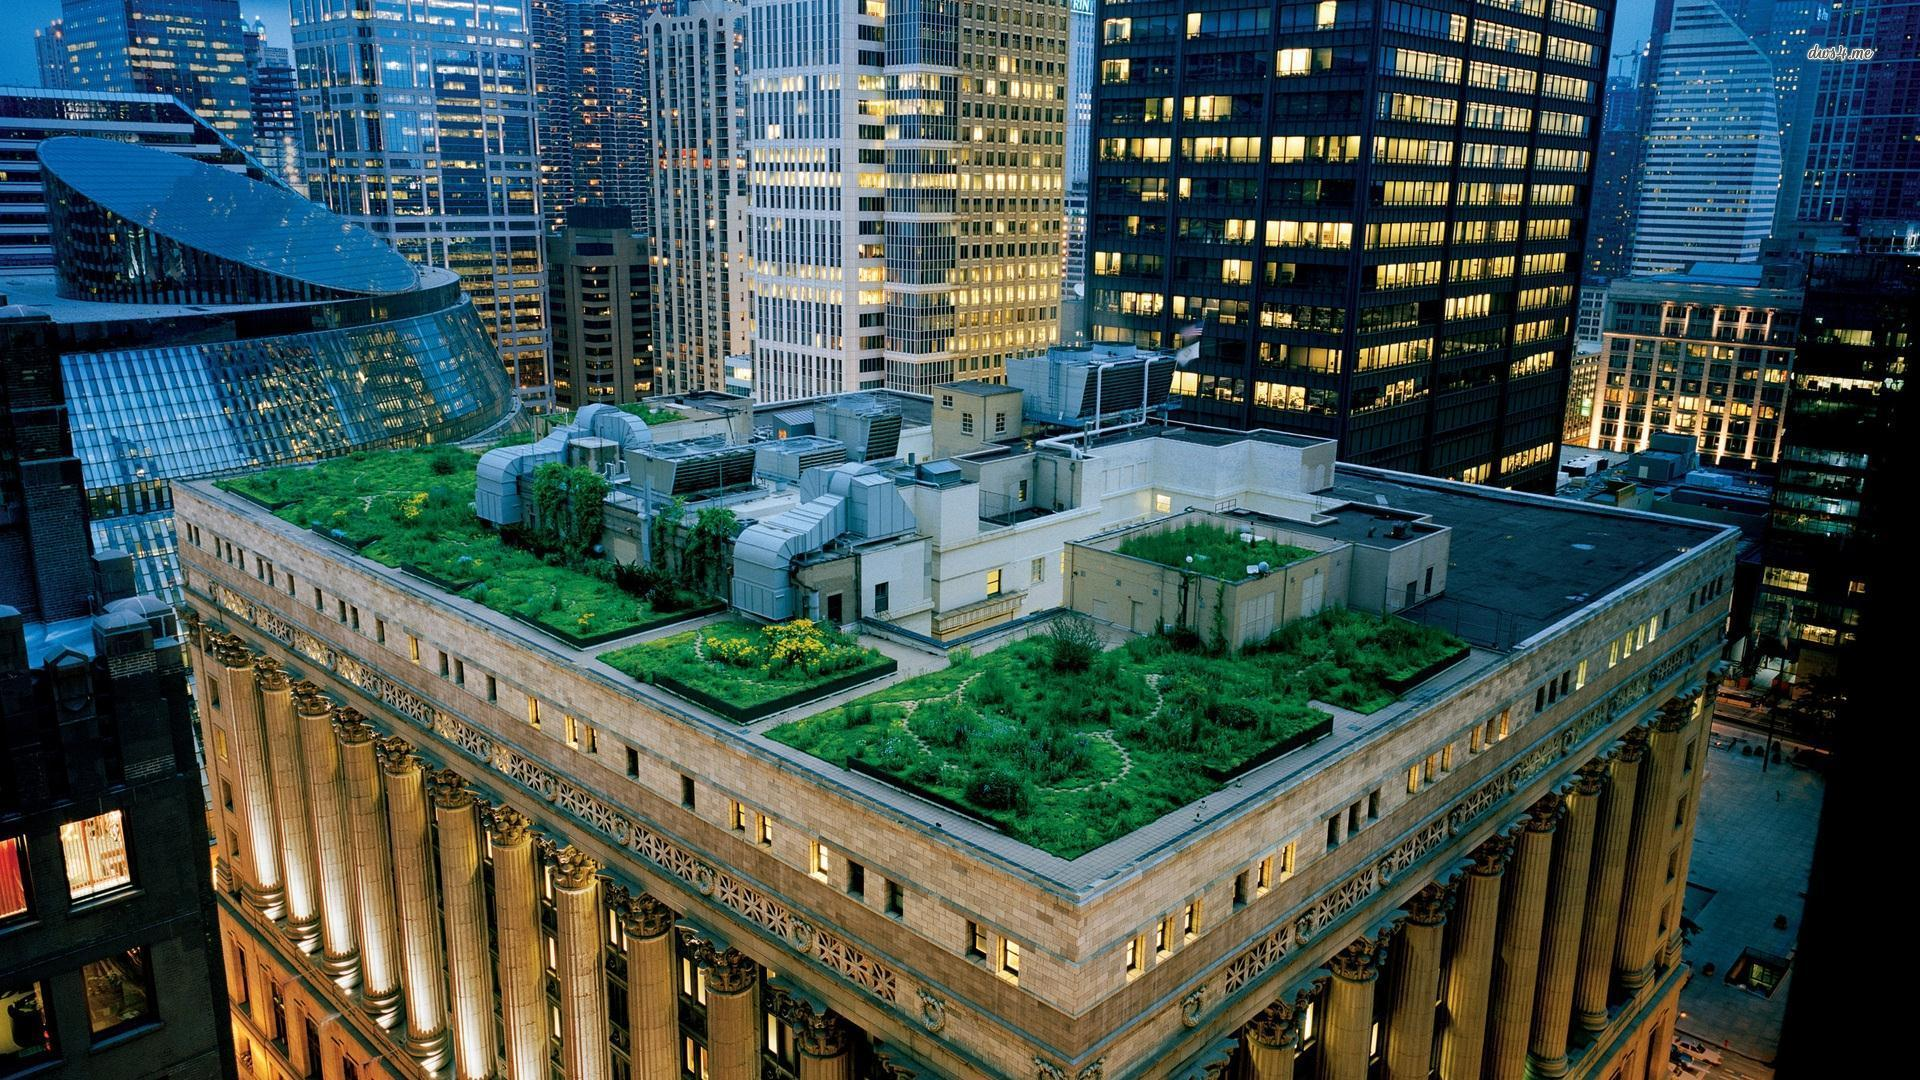 <p>Green roofs can capture rainwater, reducing flooding and stress on sewer systems. Photo by DJANDYW.COM/Flickr</p>